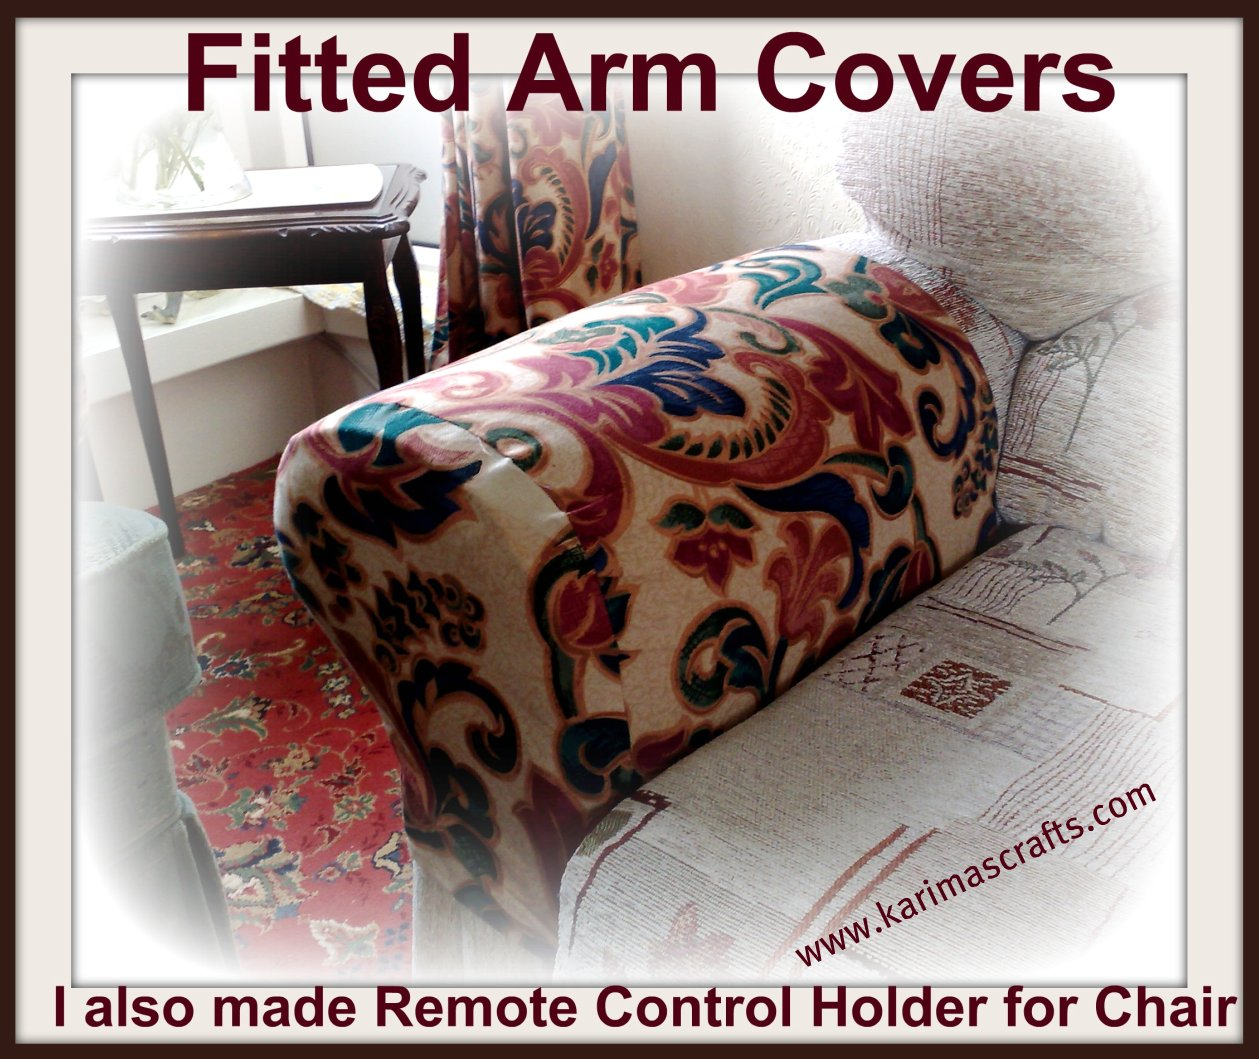 Karima's Crafts: Arm Covers and Remote Control Holder